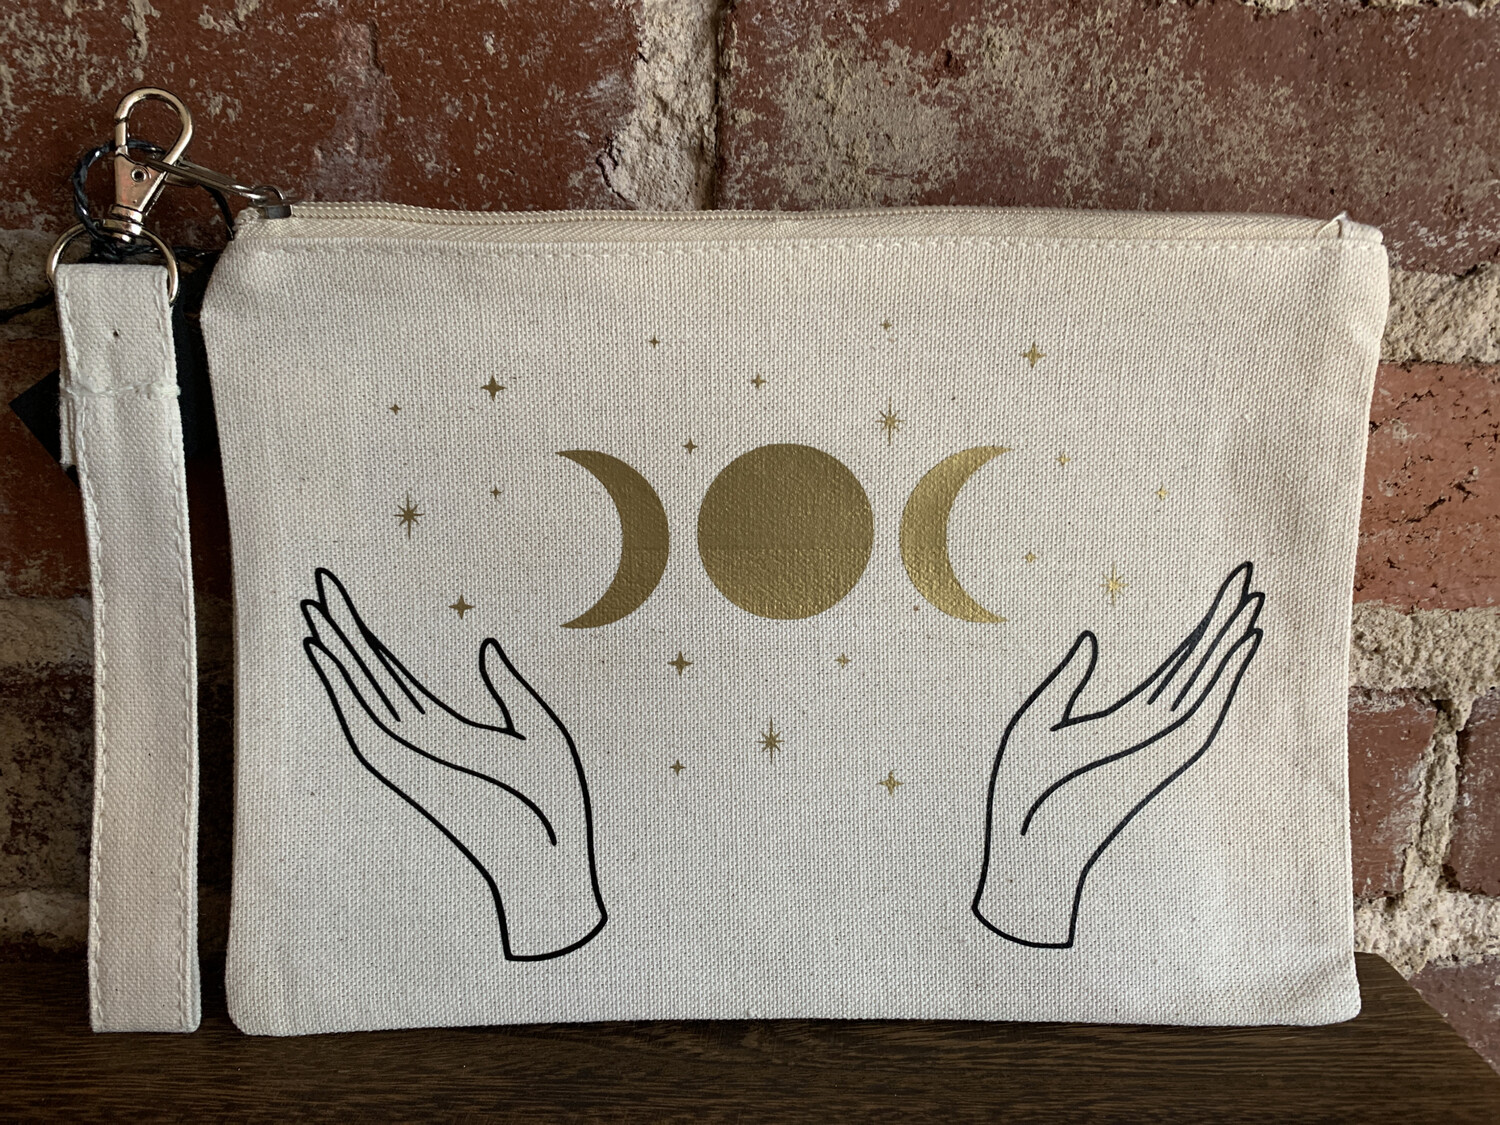 Triple Goddess Zipper Pouch